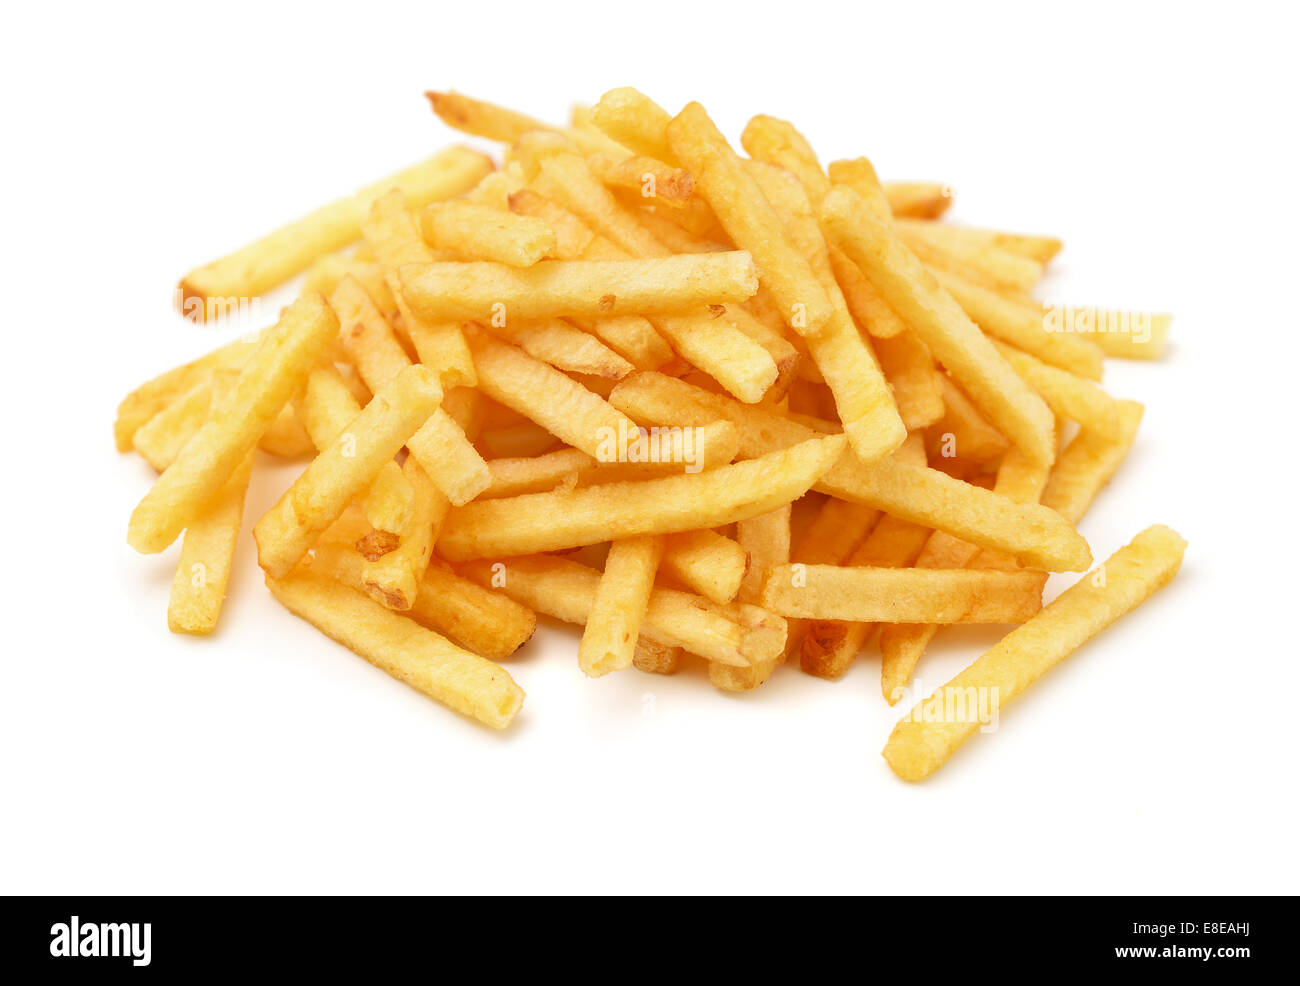 Heap of fried potato chip sticks isolated on white - Stock Image